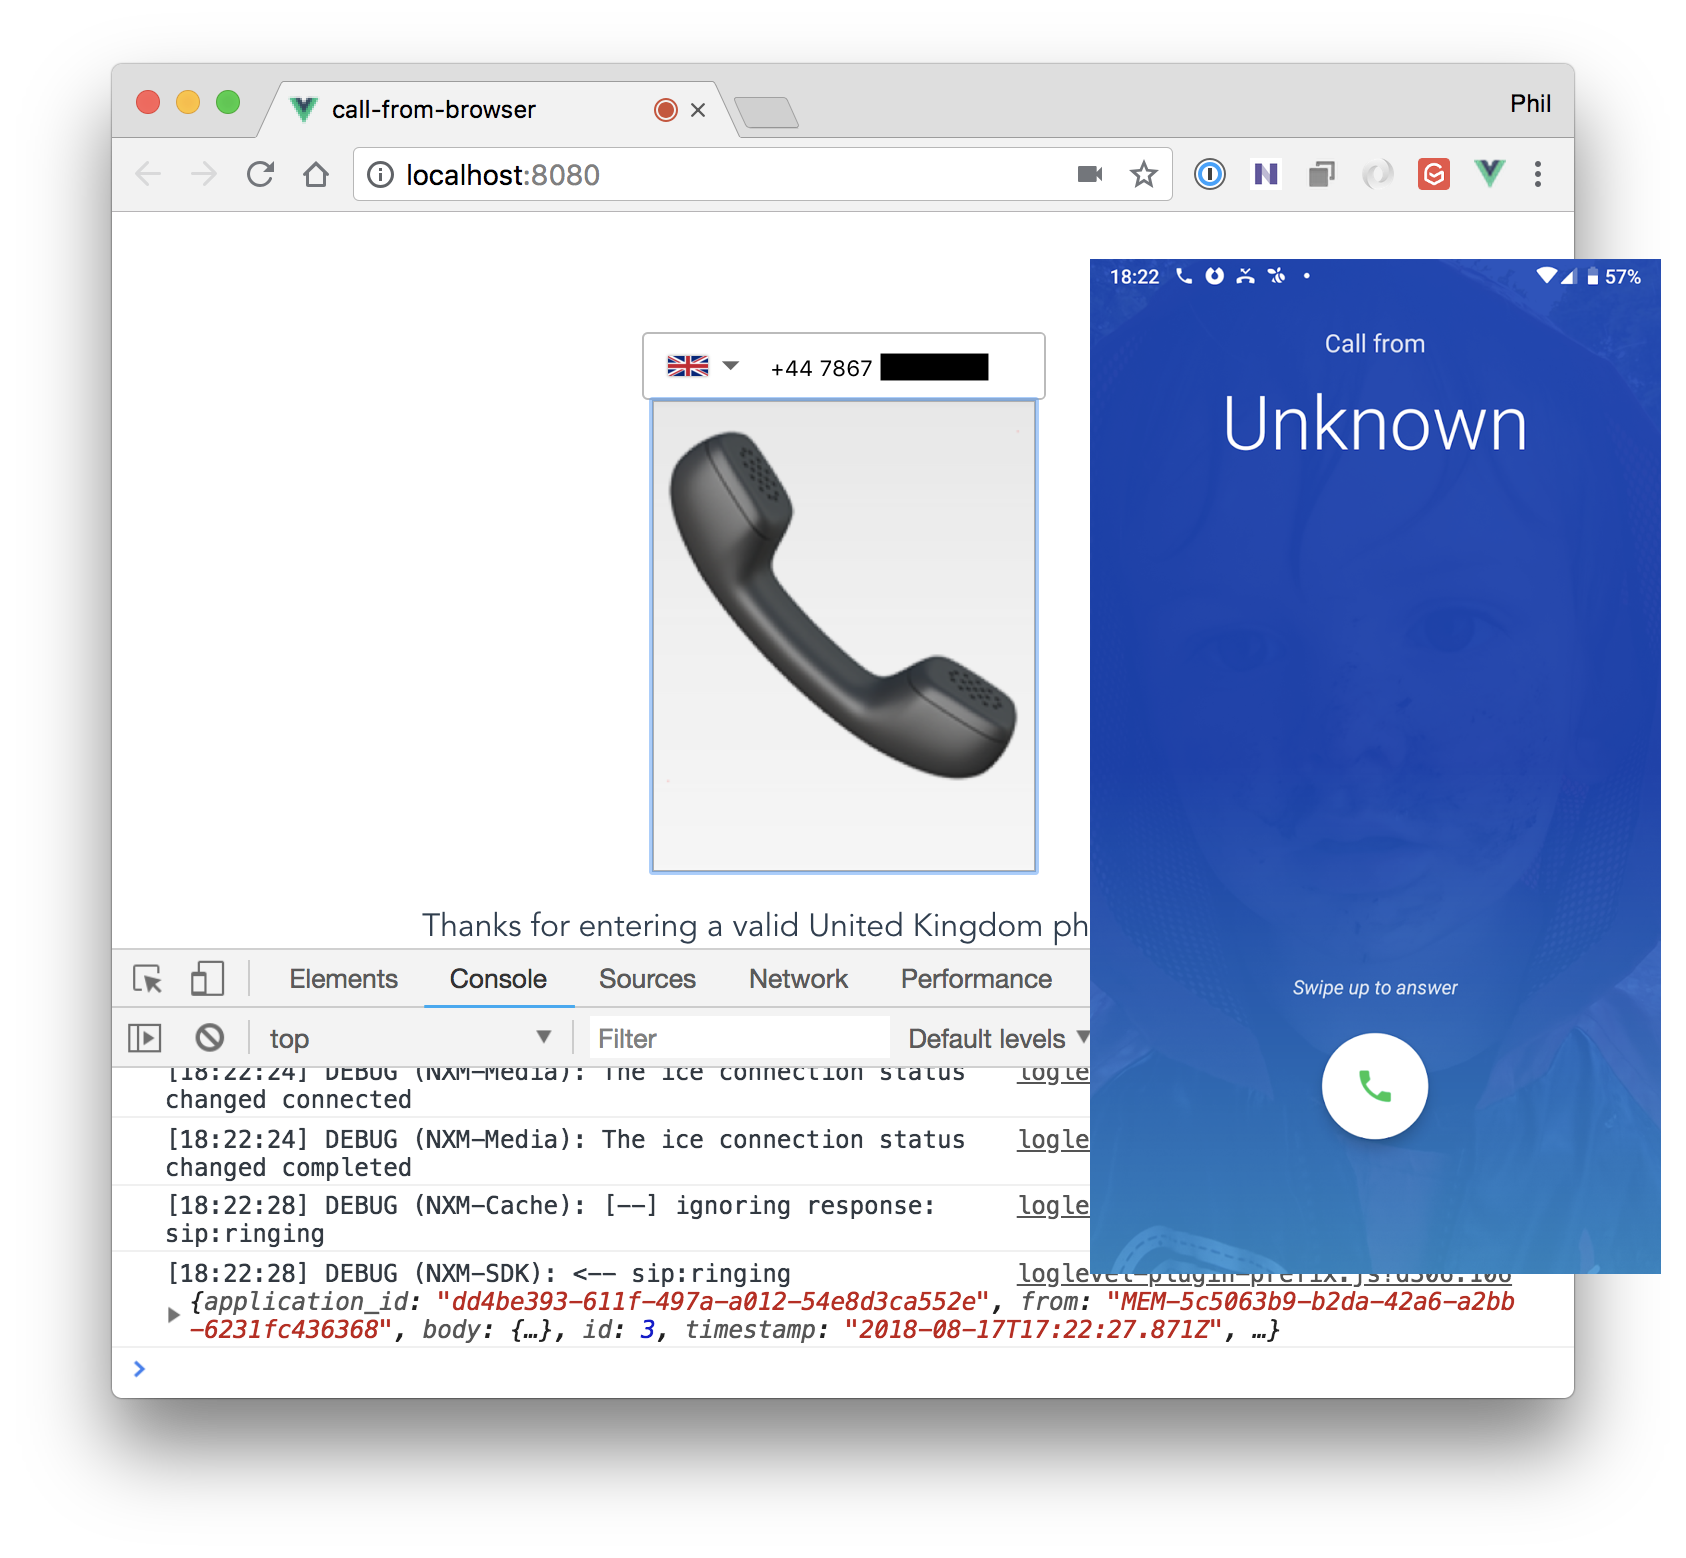 Full Vue.JS Call from Browser application working alongside screenshot of phone ringing